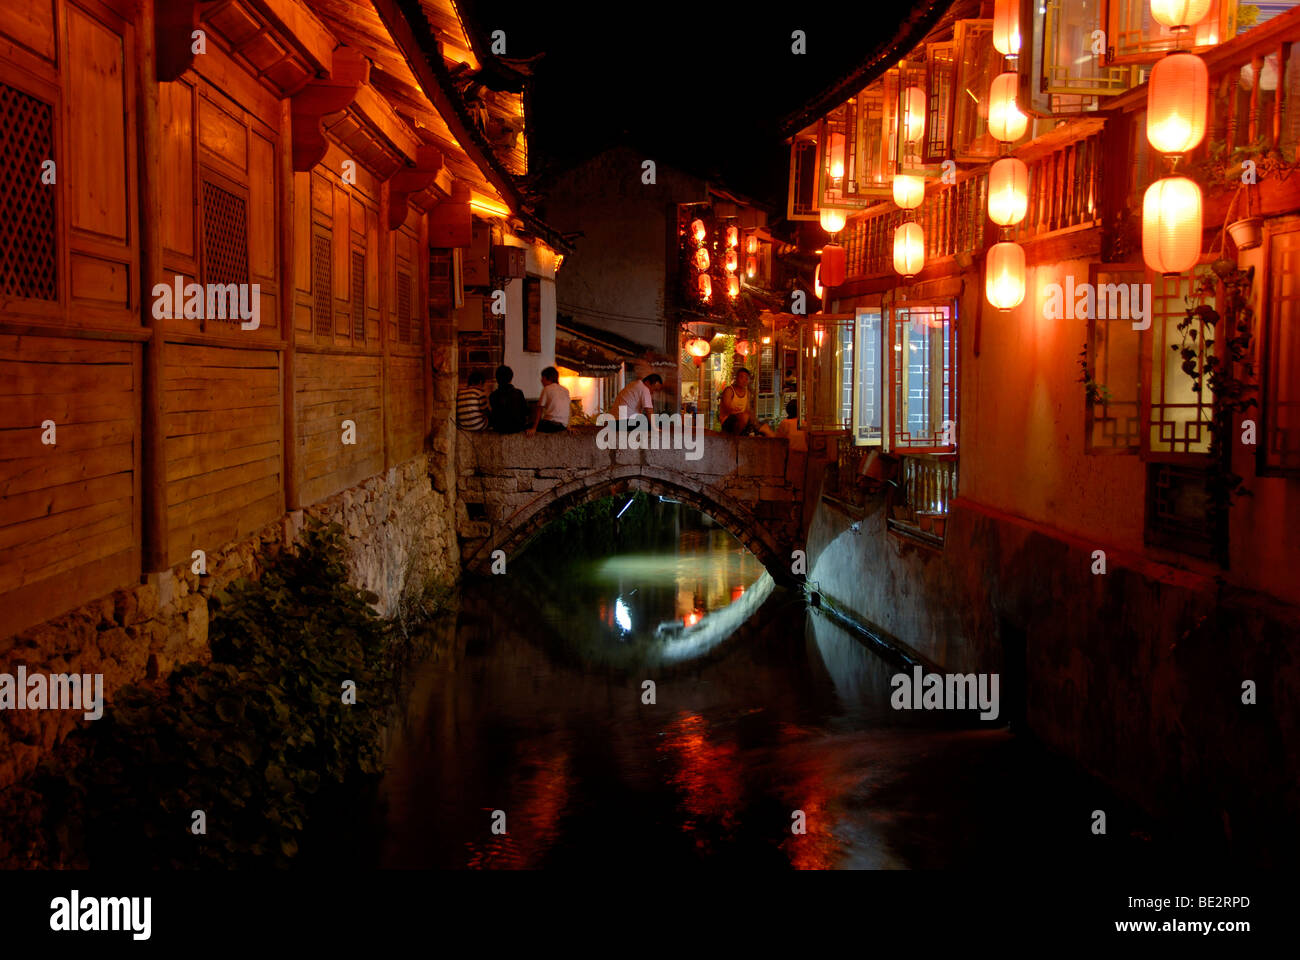 Old wooden houses, red lanterns, canal and bridge, historic centre of Lijiang, UNESCO World Heritage Site, night - Stock Image